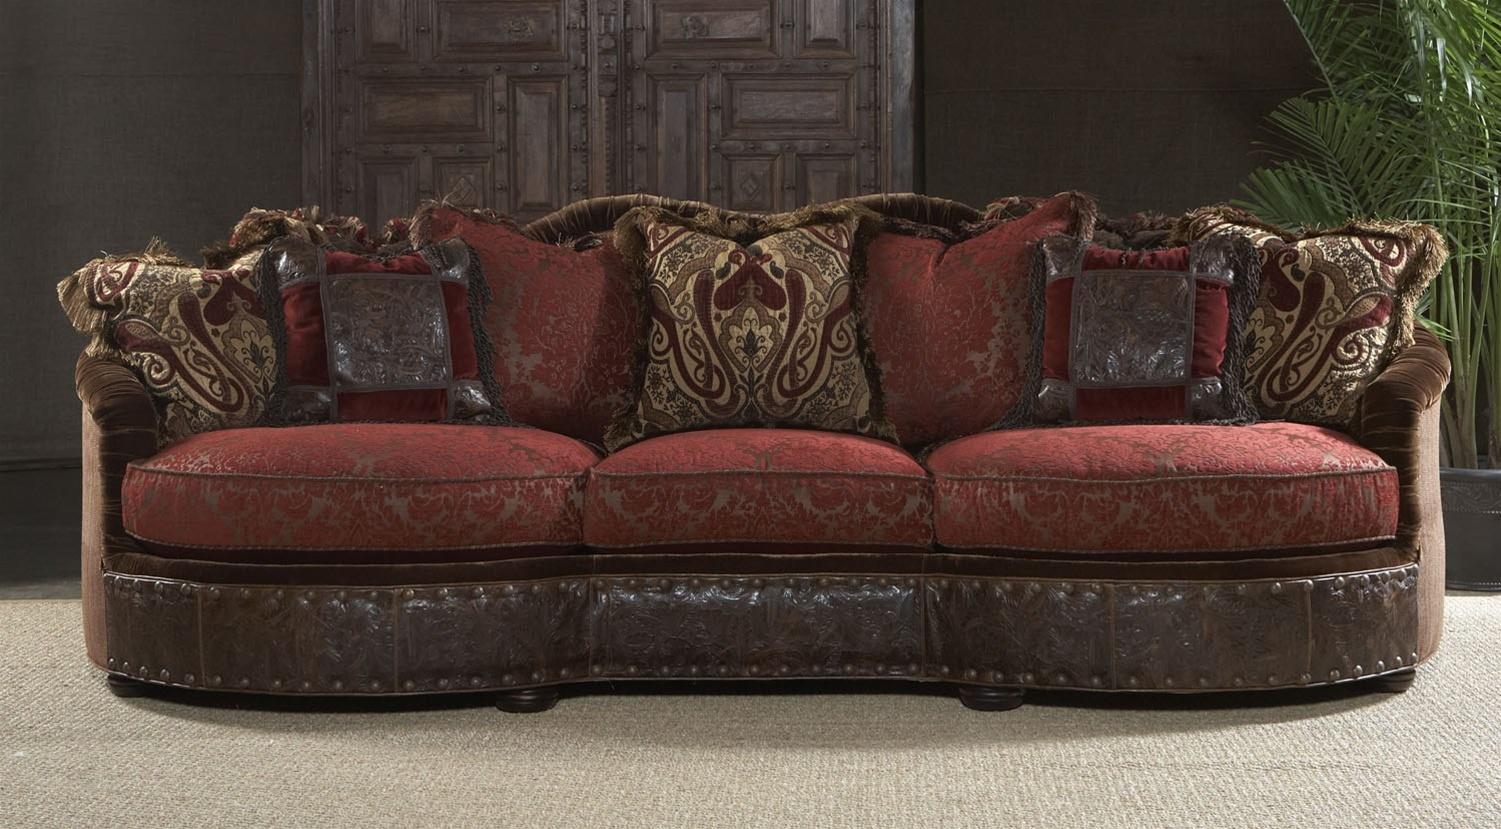 Luxury Leather U0026 Upholstered Furniture 11 Luxury Red Burgundy Sofa Or Couch.